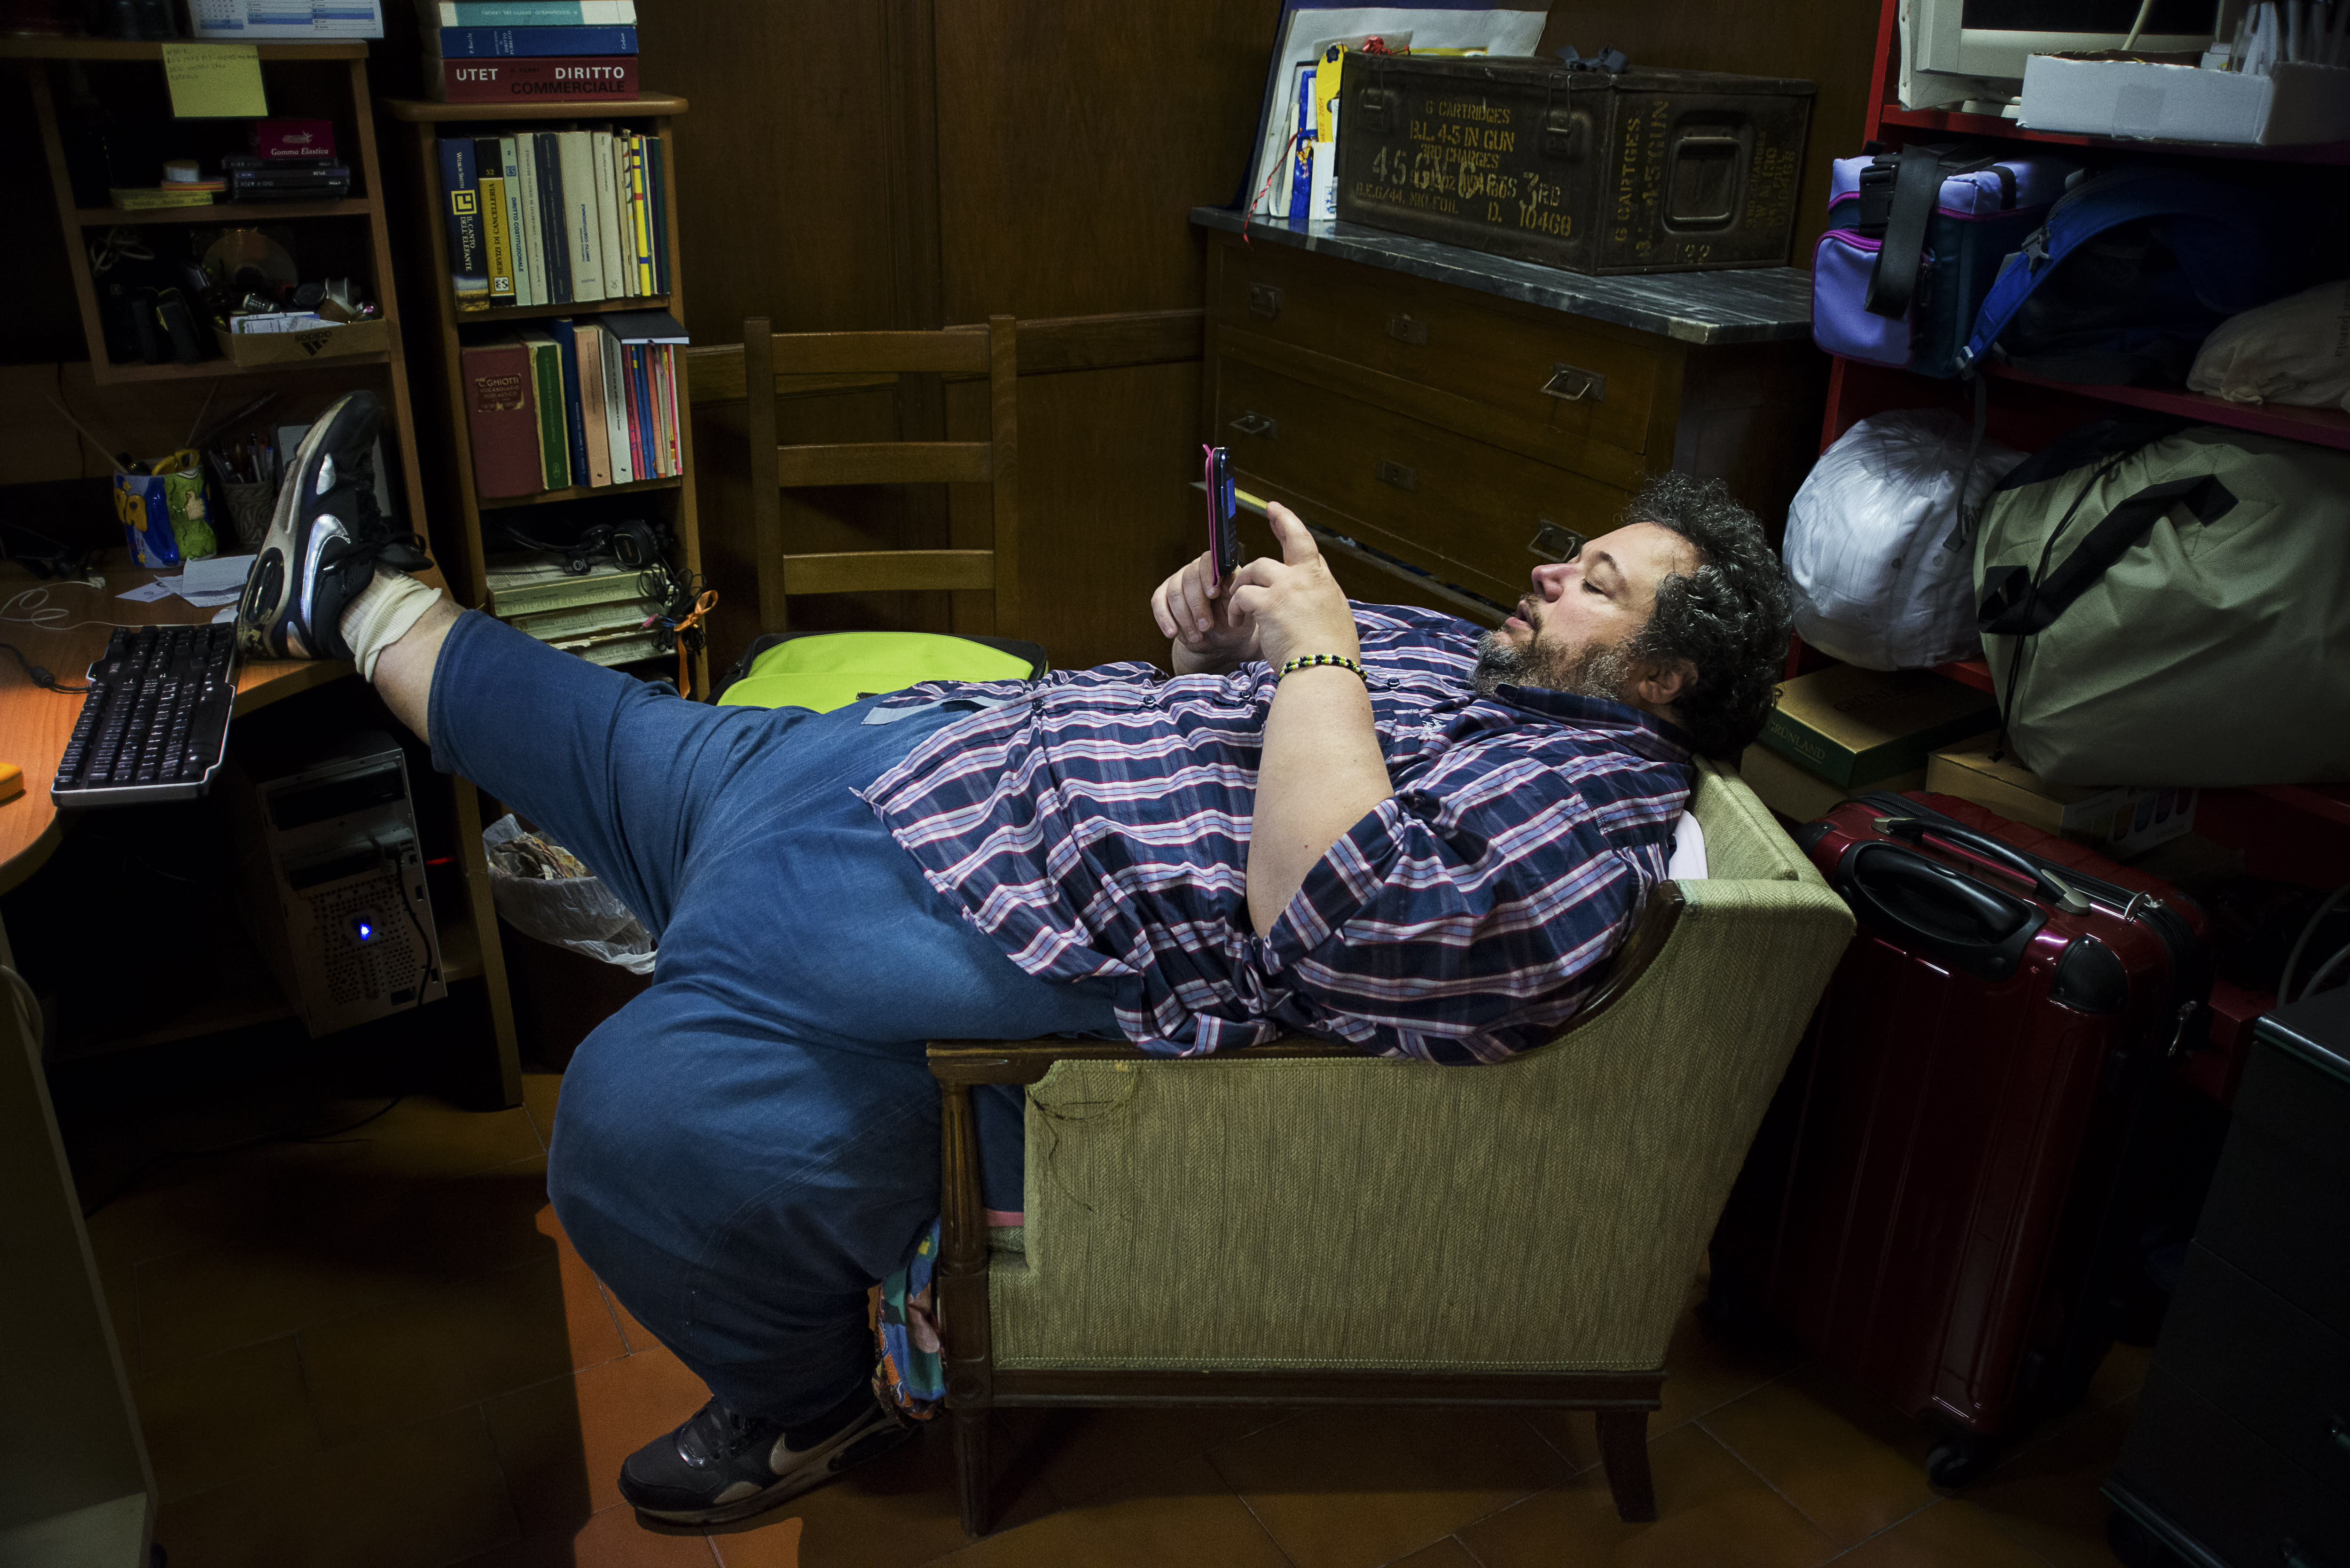 <p>Giovanni Calacione, 47, in his home. Calacione has suffered from severe obesity for many years and his weight has fluctuated, reaching as high as 661 lbs. He has always battled against his body, and obesity has deeply influenced his emotional and work life, he says. (Photograph by Silvia Landi) </p>